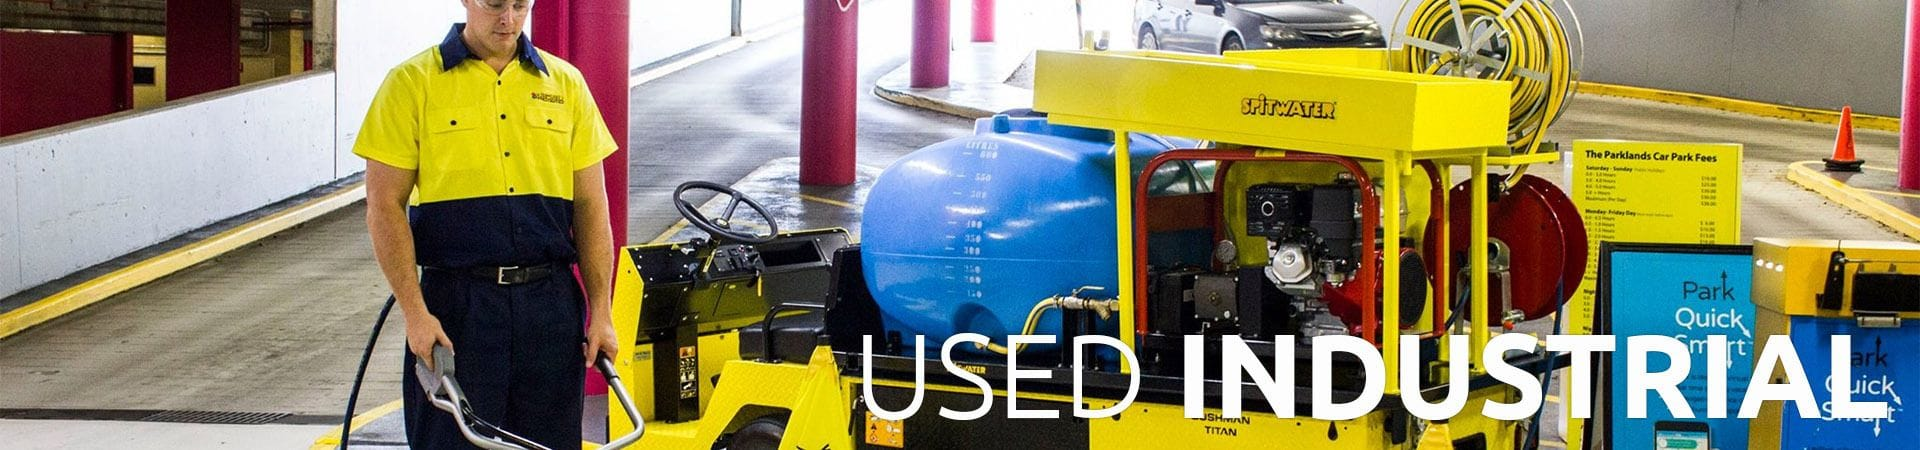 Used Industrial Vehicles | Golf Car World